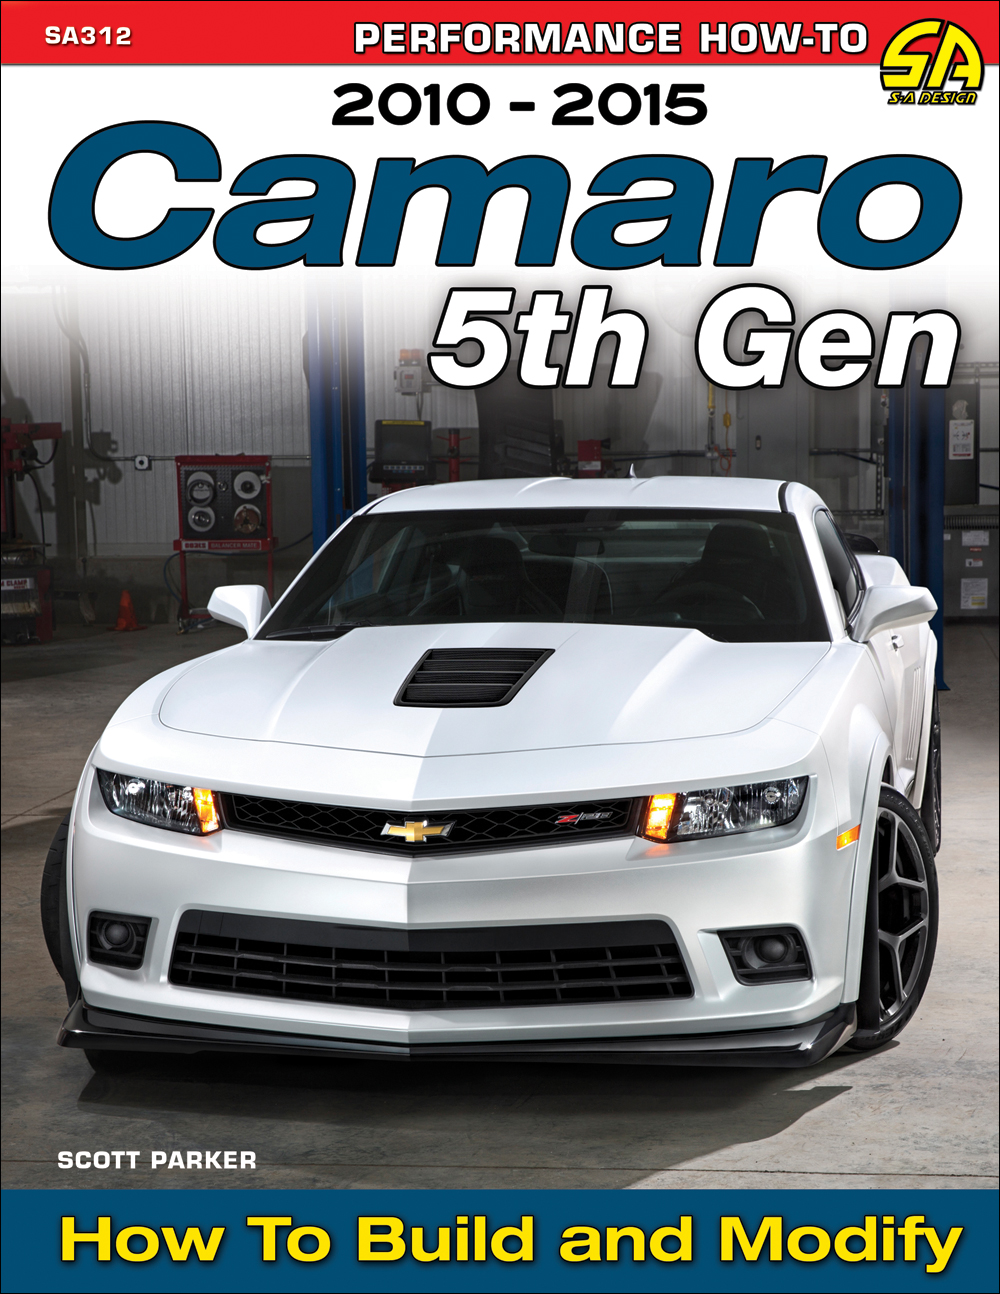 2010-2015 How to Build and Modify Camaro 5th Gen